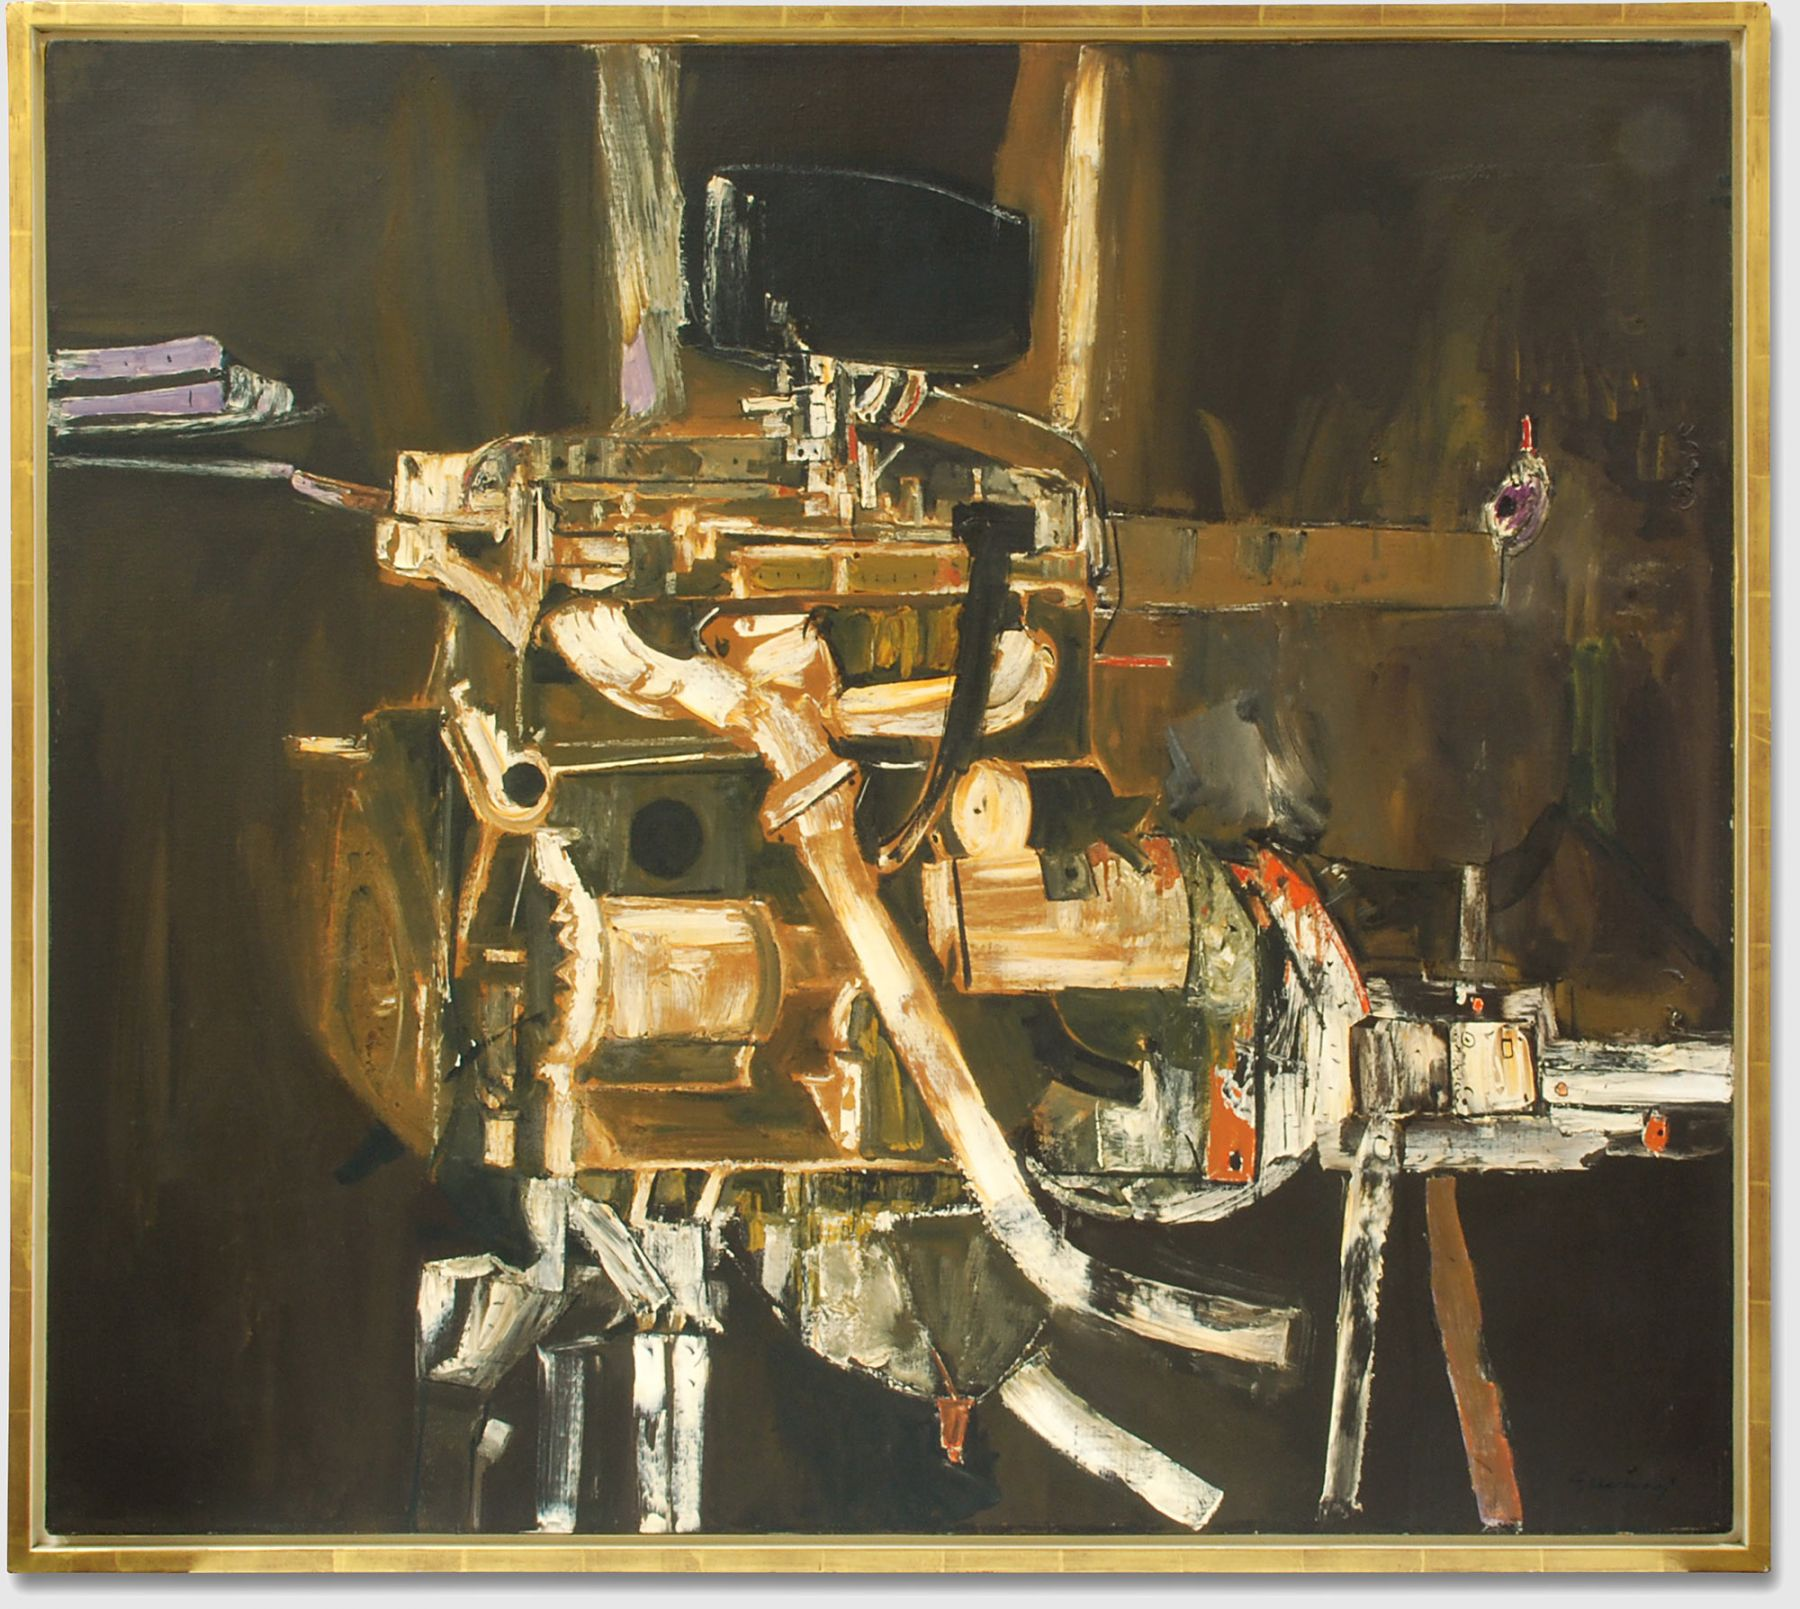 EDGAR EWING (1913-2006), American Engine, c. 1958